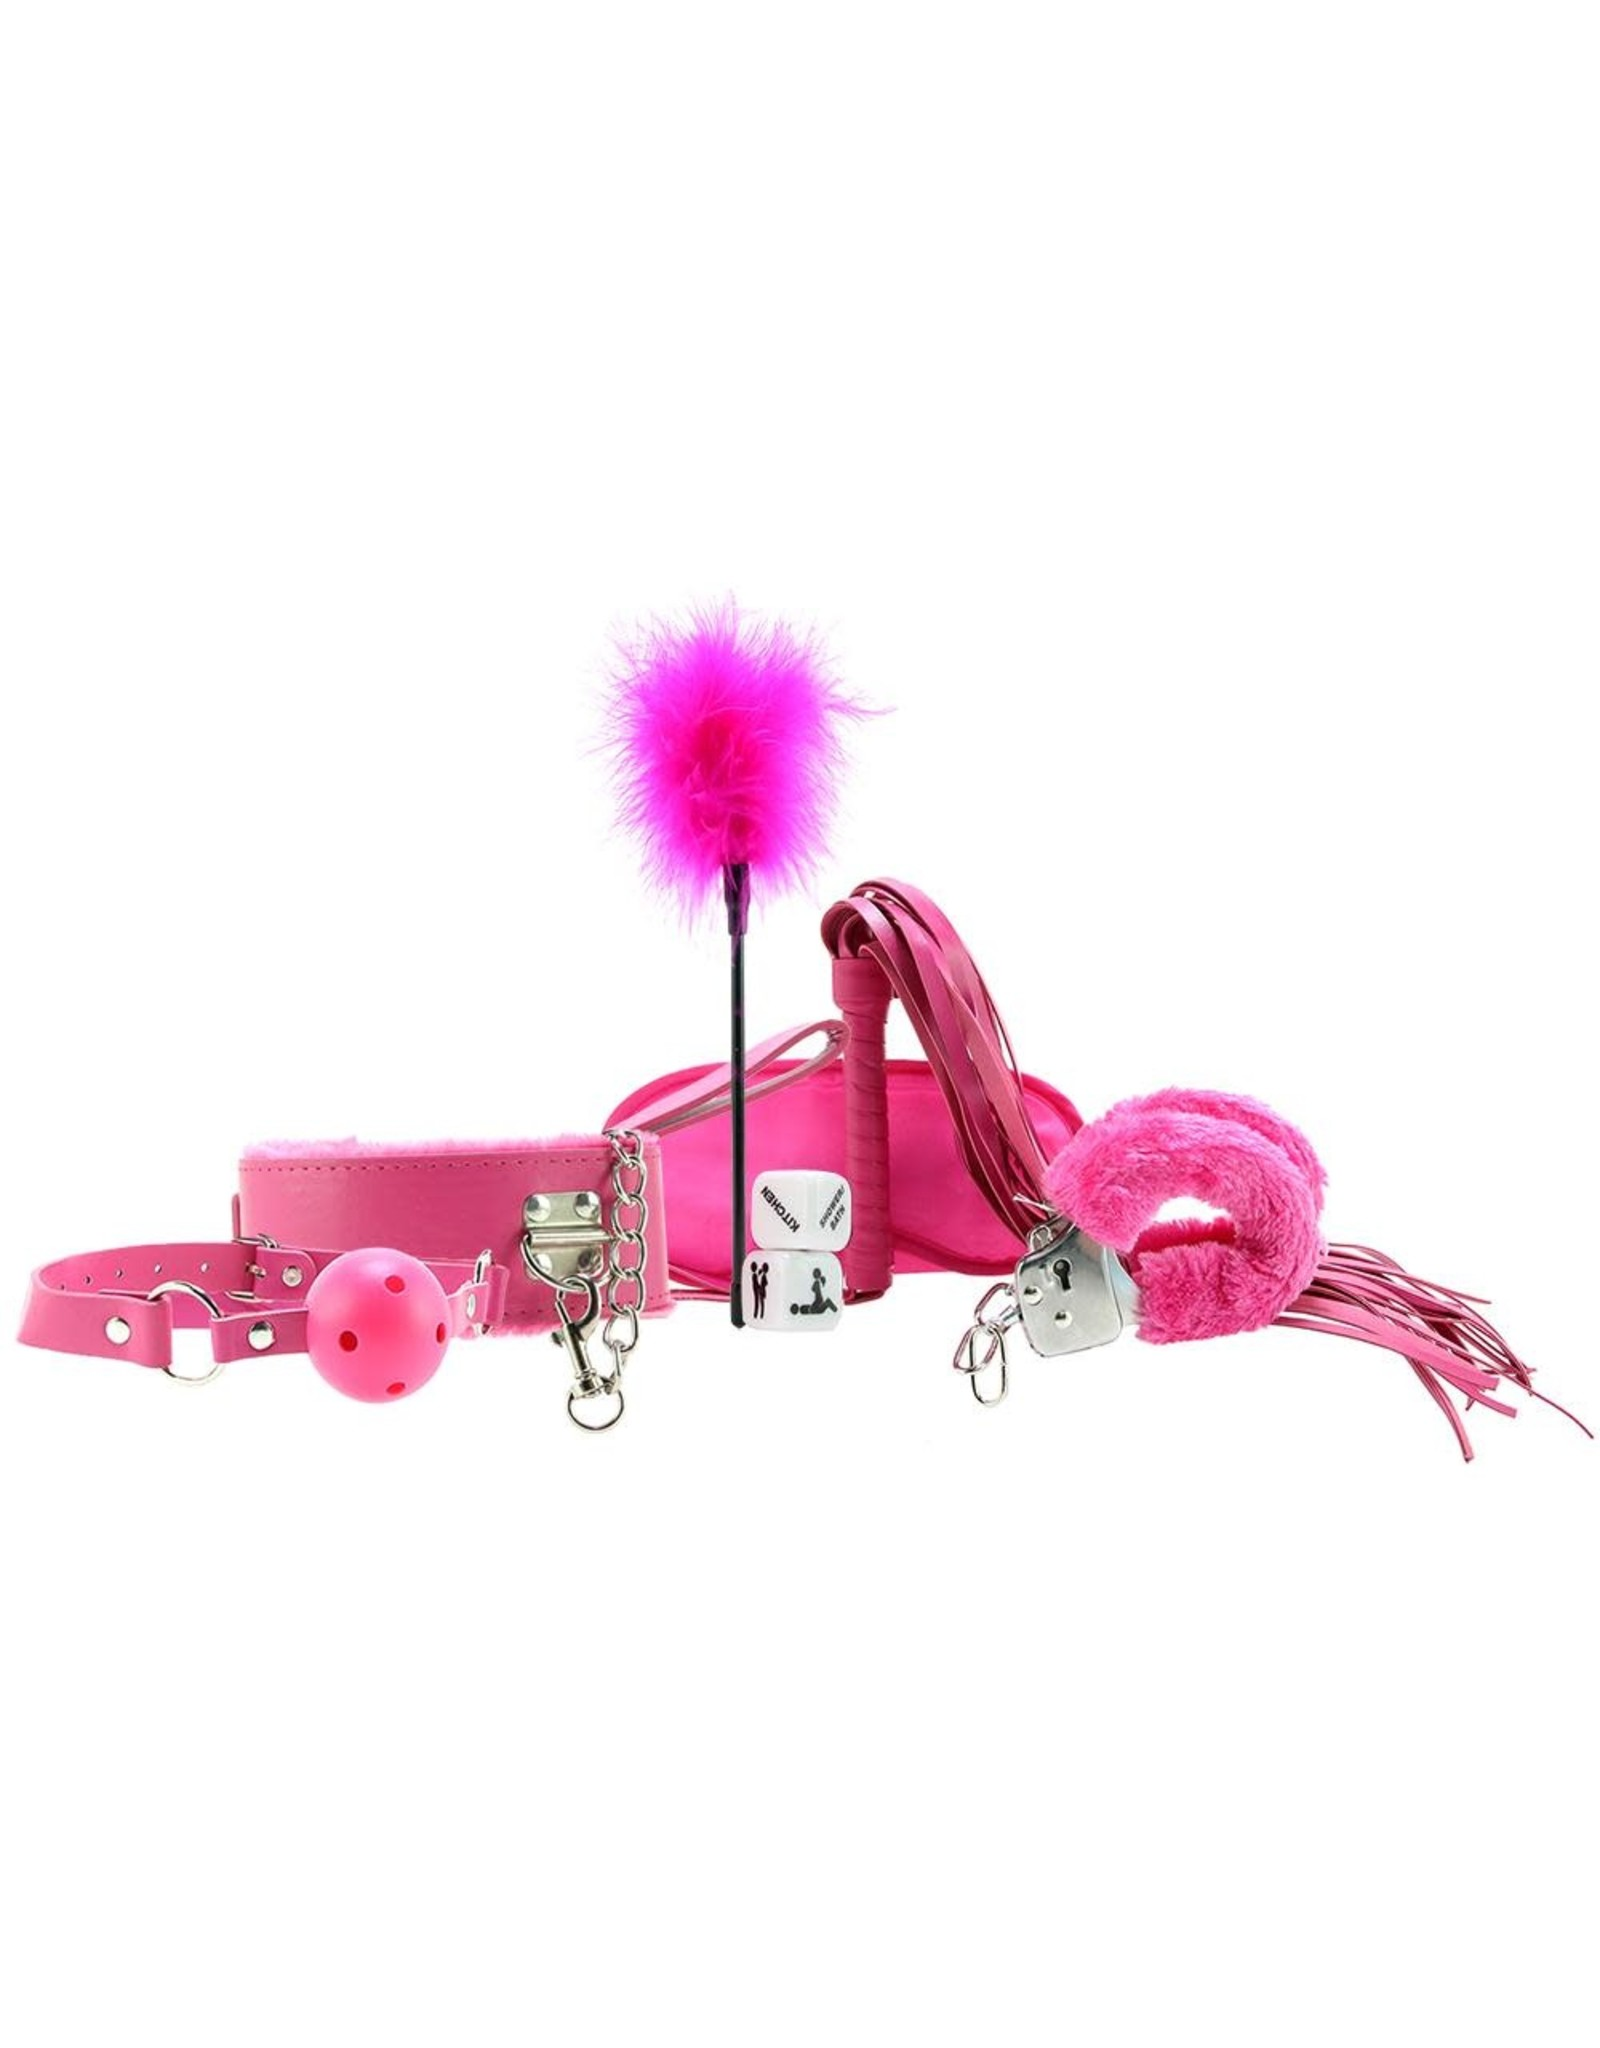 OUCH OUCH! - INTRODUCTORY BONDAGE KIT #6 - PINK